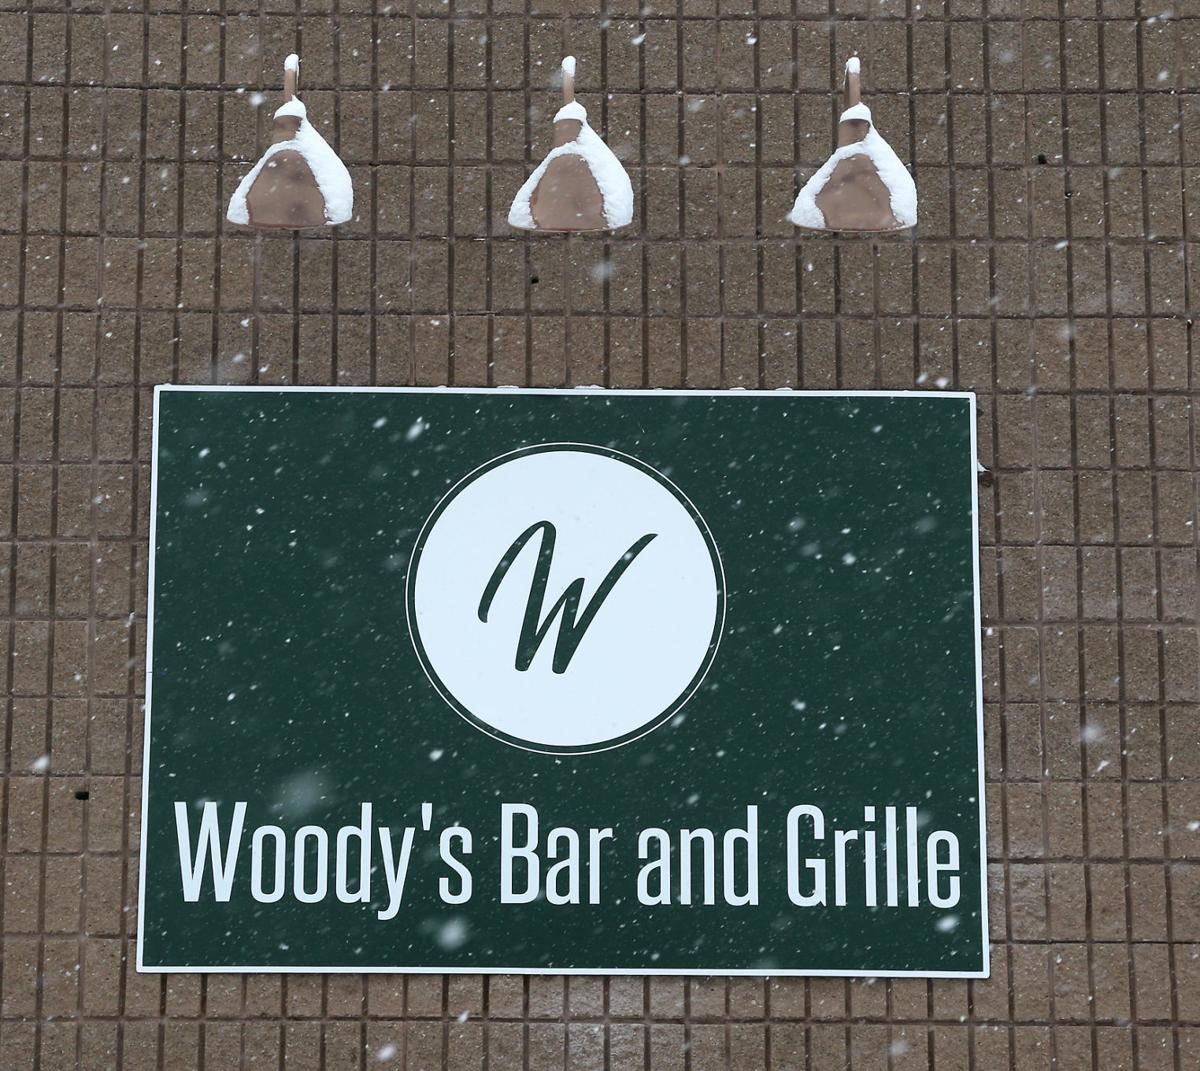 Woody's Bar & Grille